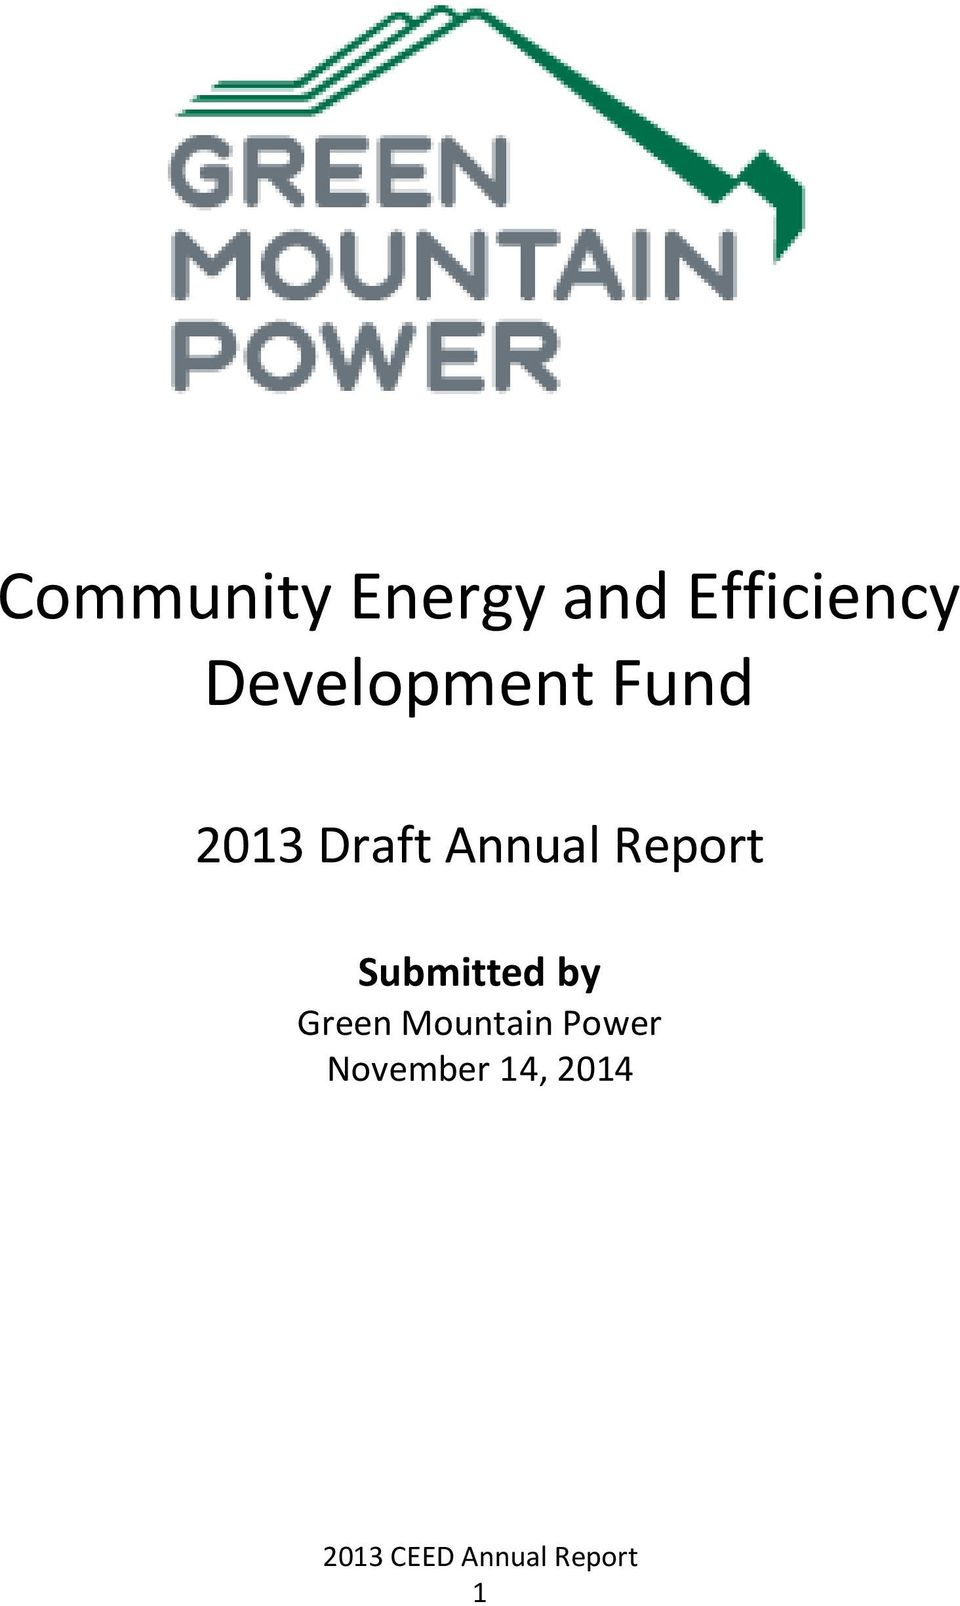 Annual Report Submitted by